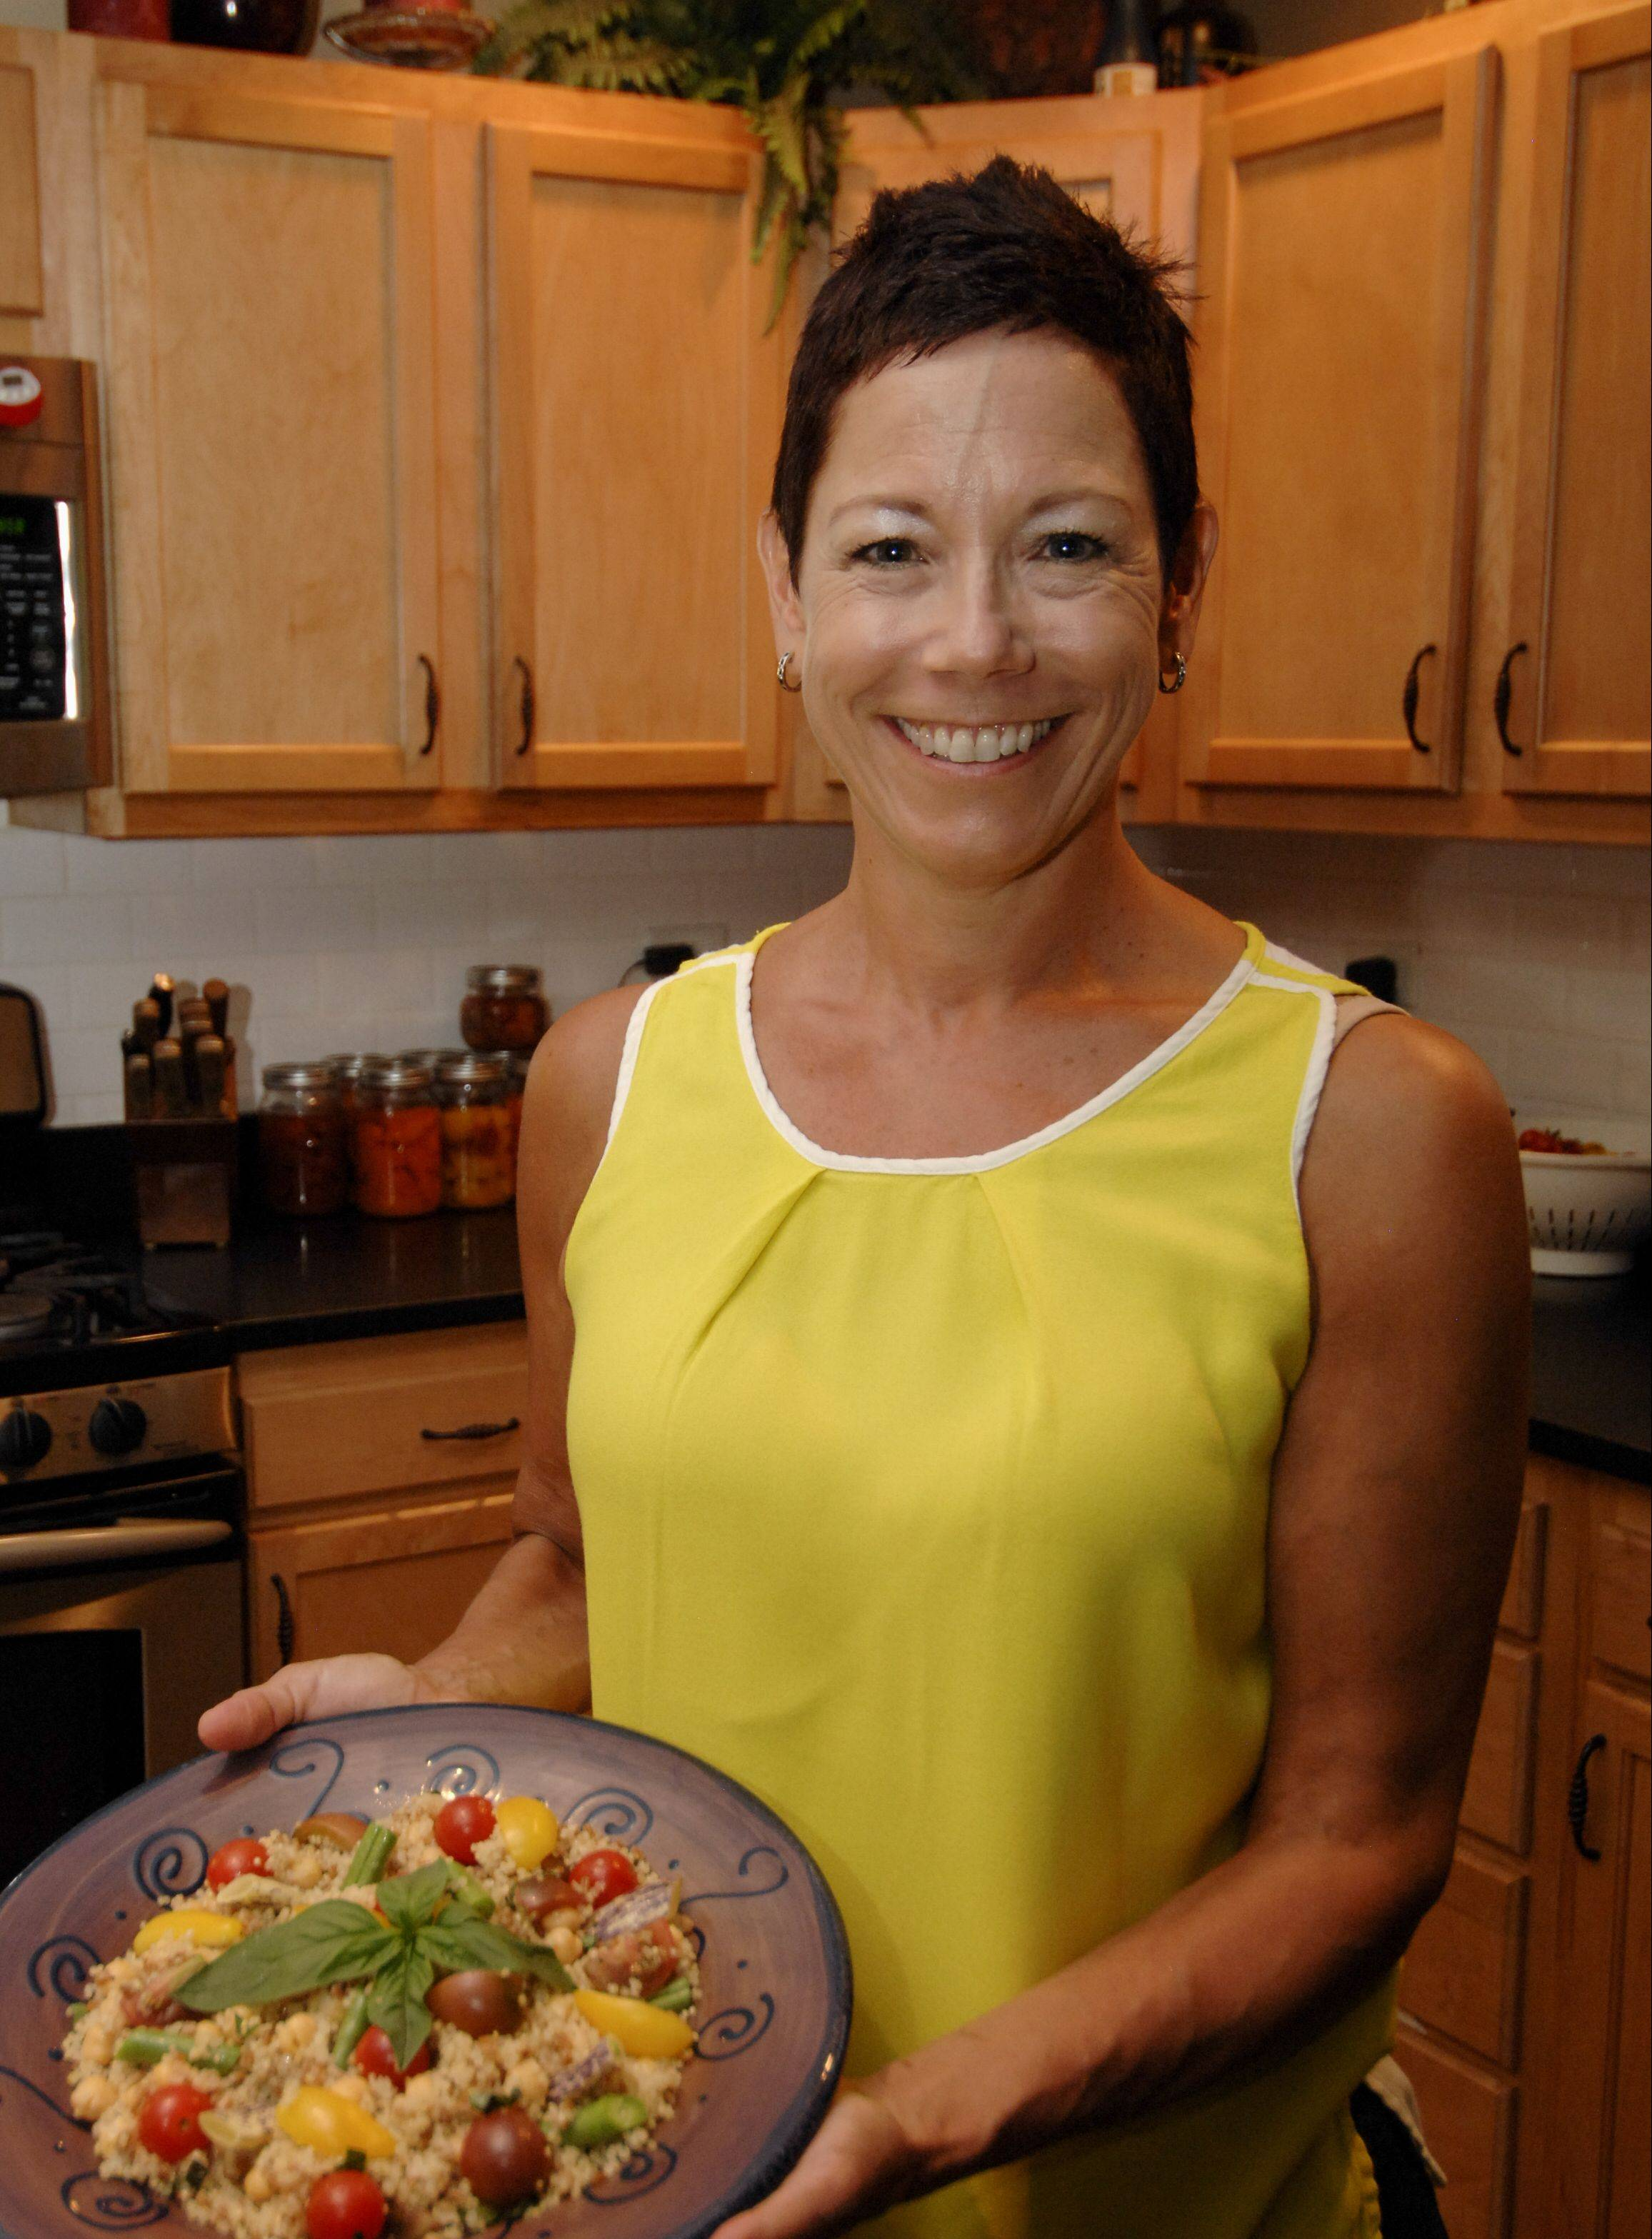 Lori Motyka of West Chicago loves quinoa for breakfast, lunch or dinner. She's one of 16 home cooks in the Daily Herald Cook of the Week Challenge.